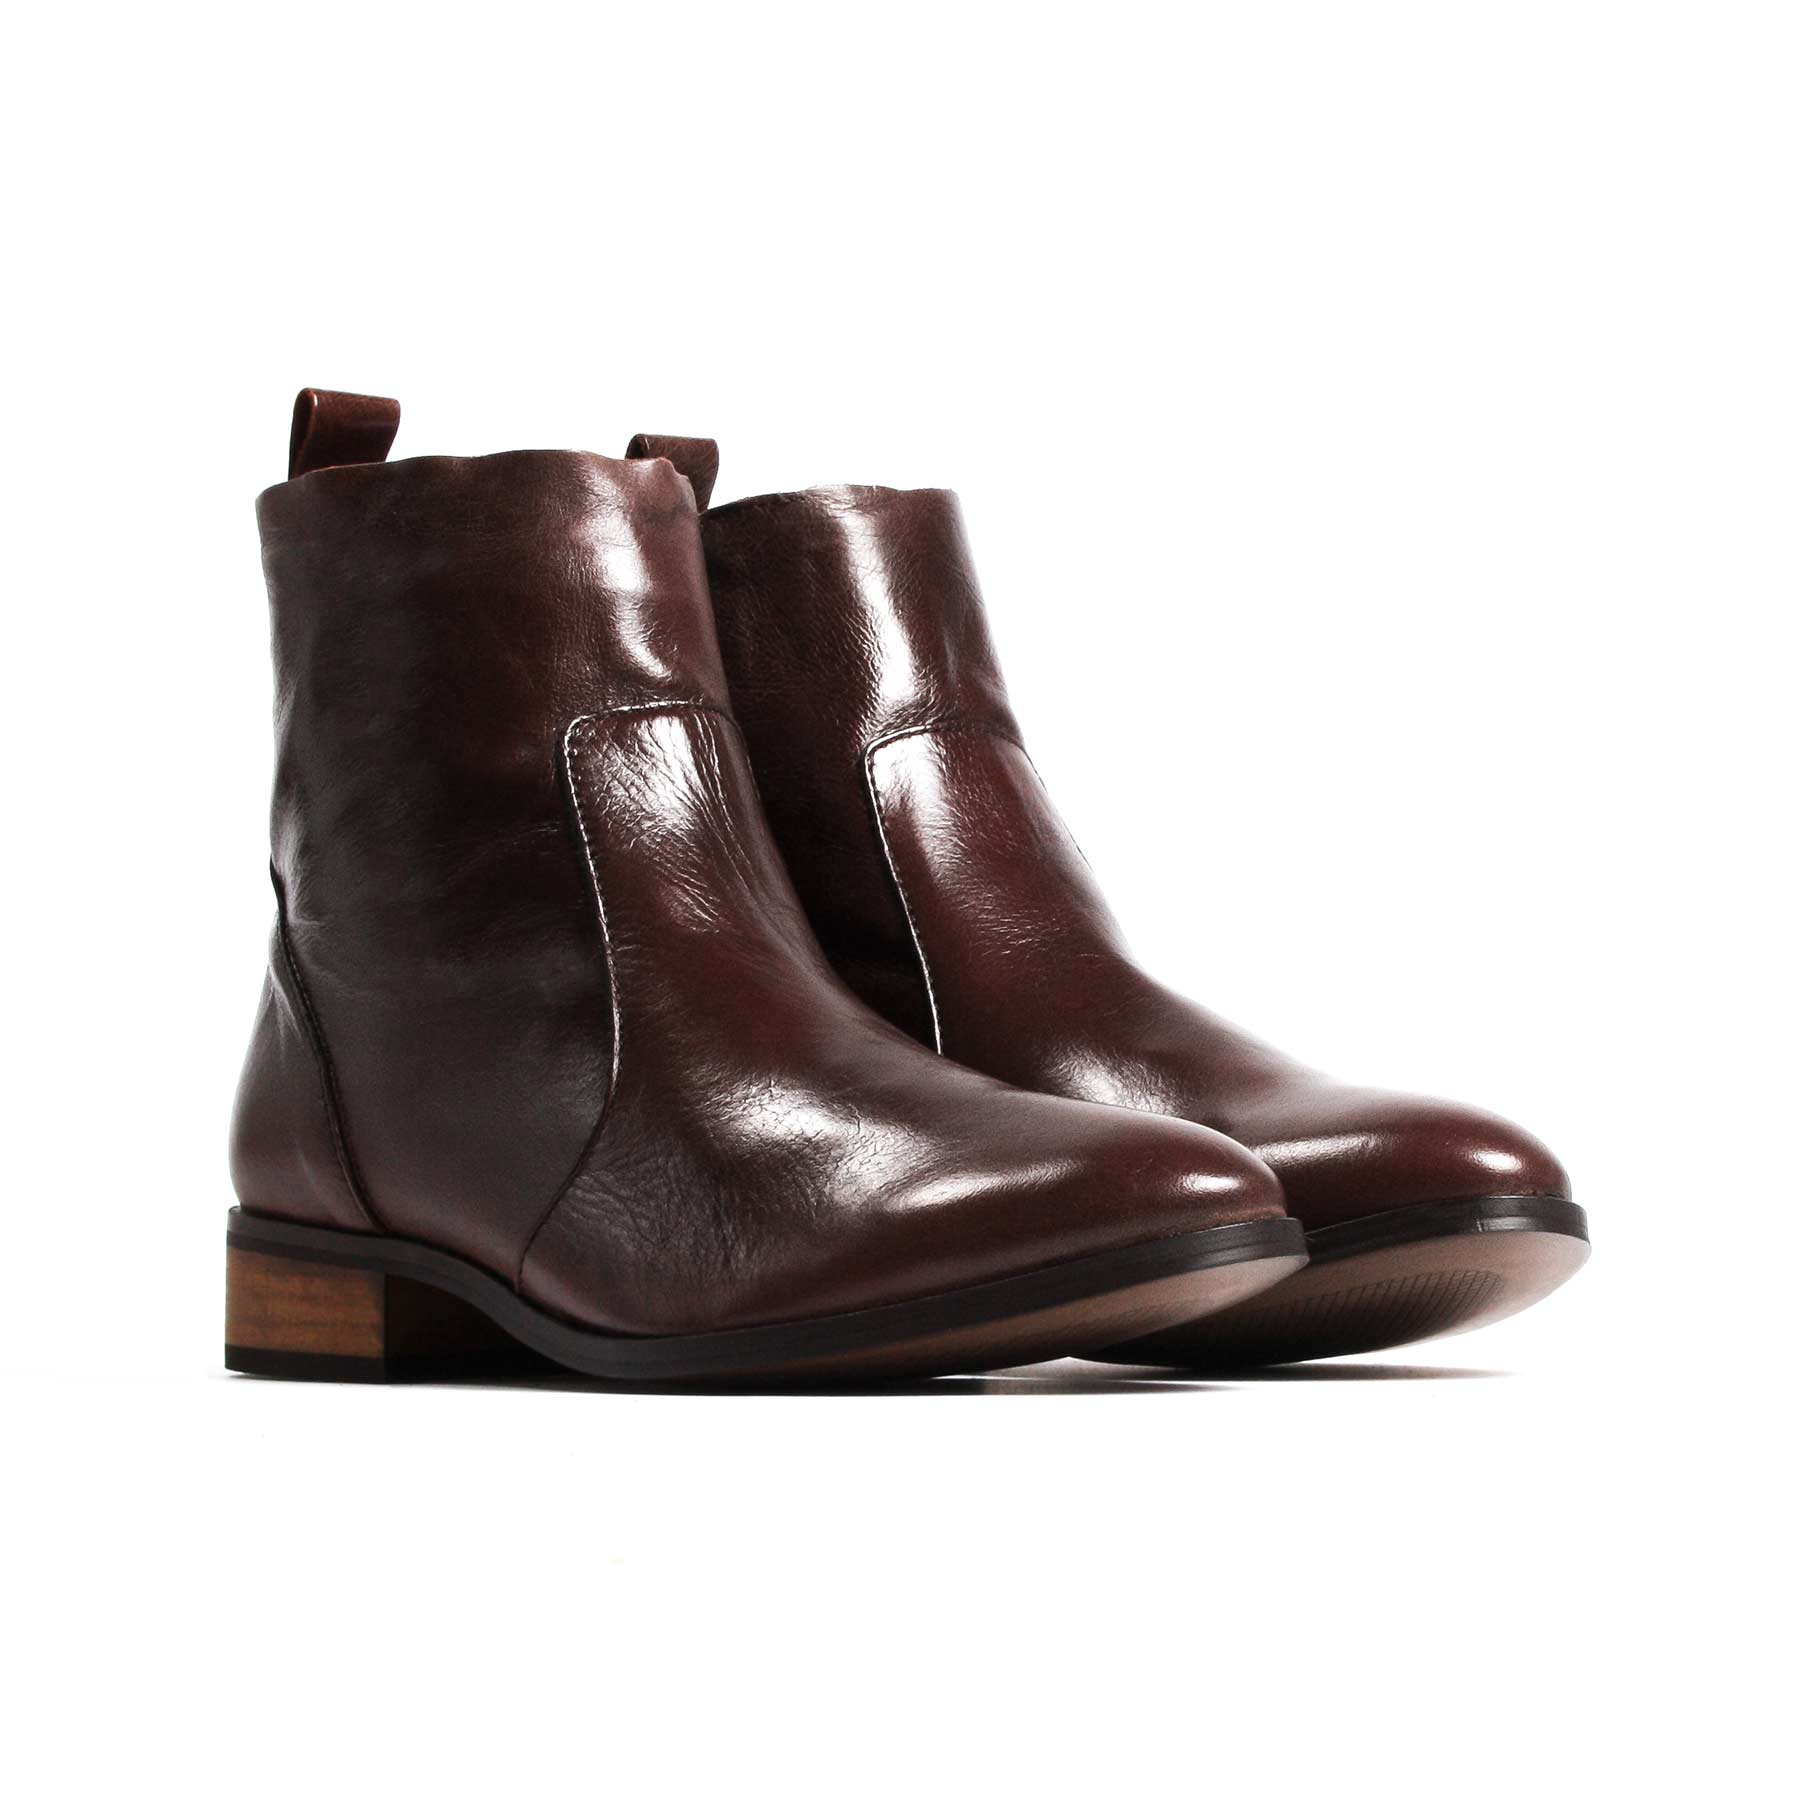 Mercer Brown Leather Booties